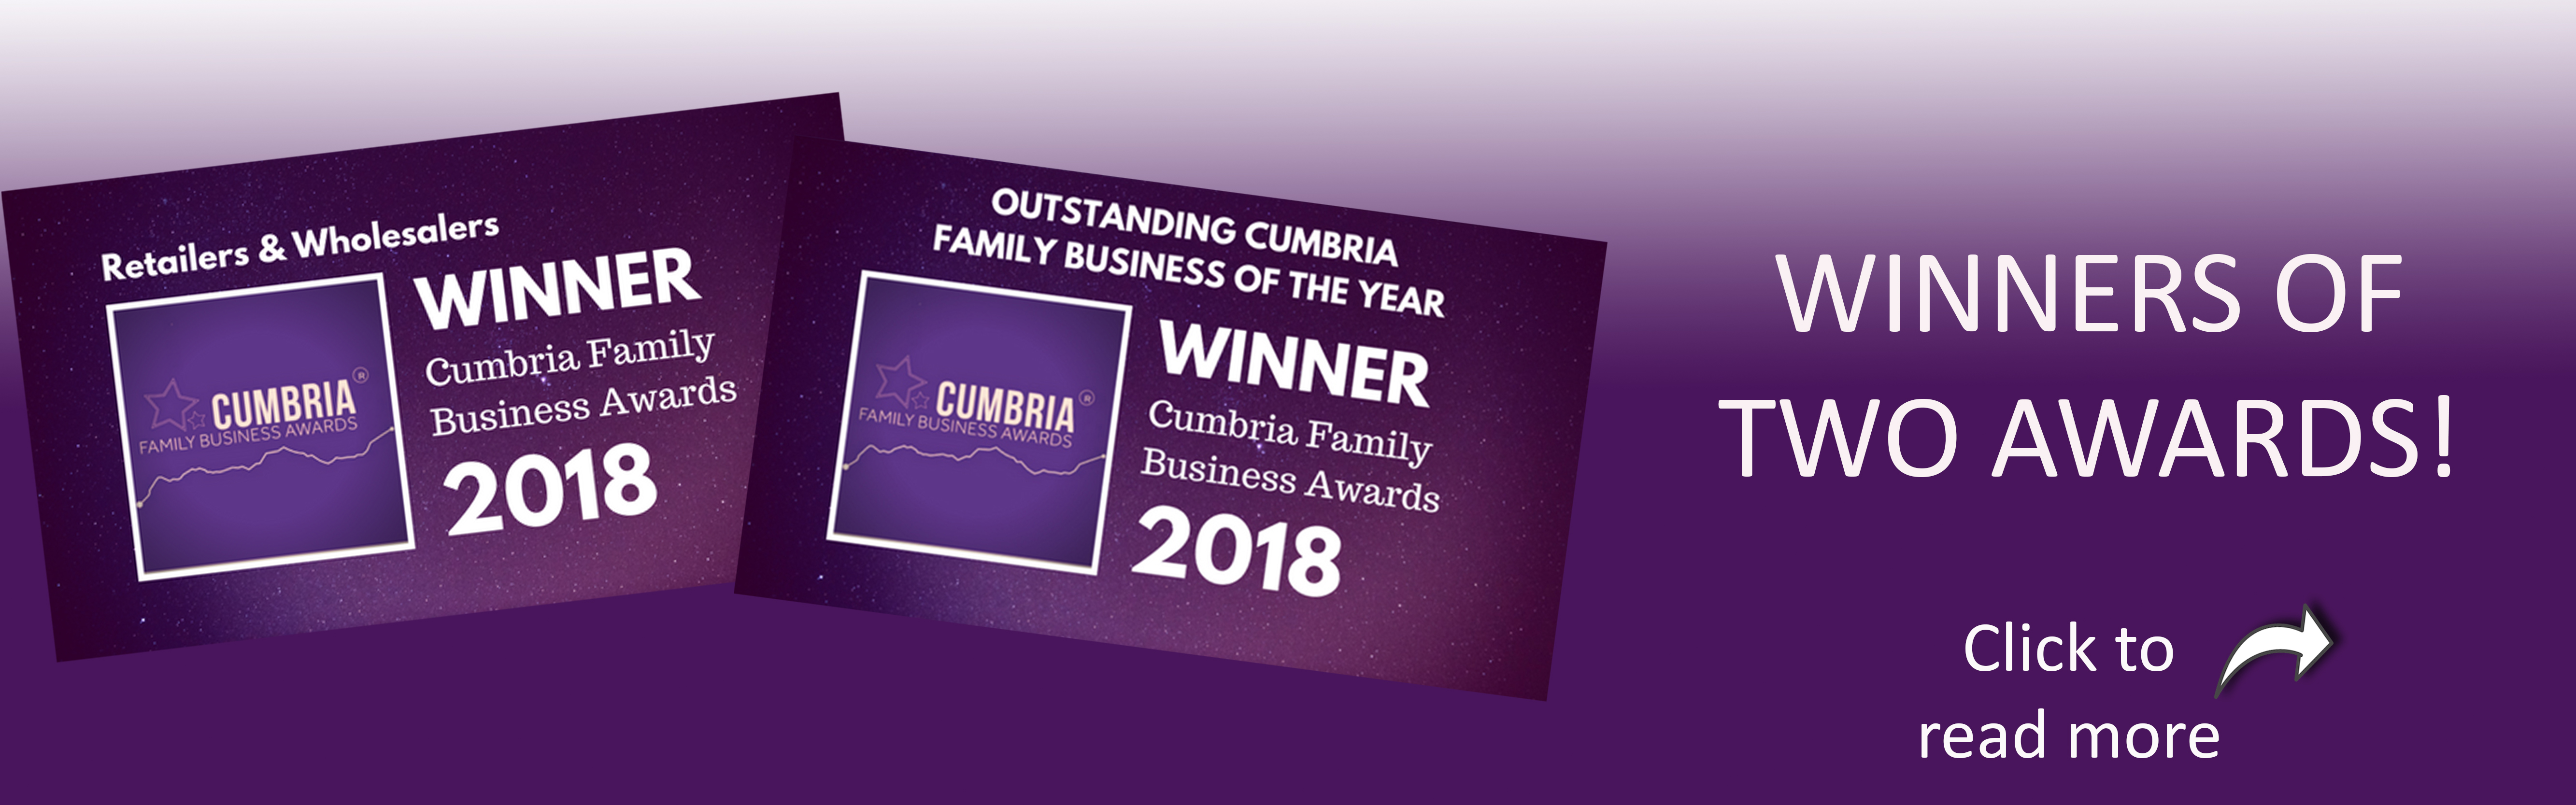 Pioneer Foodservice | Cumbria Family Business Awards